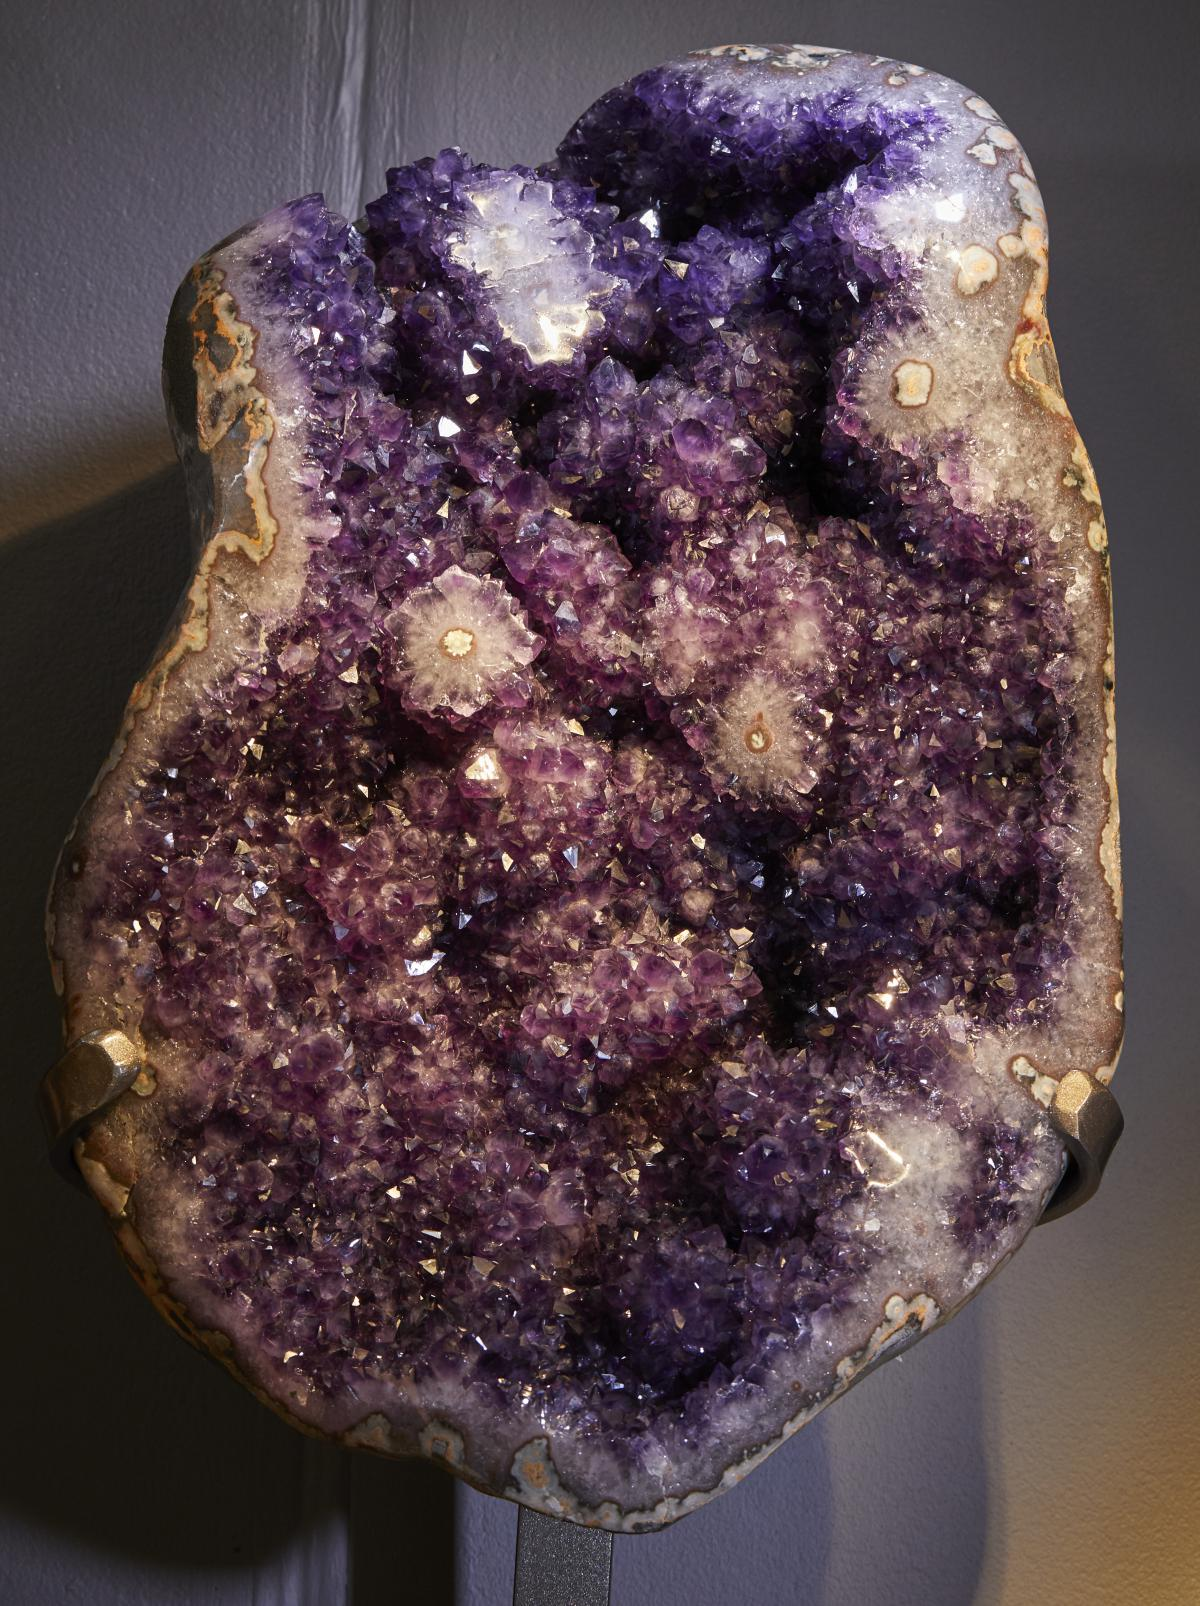 A LARGE AMETHYST CLUSTER WITH STALACTITES ON METAL